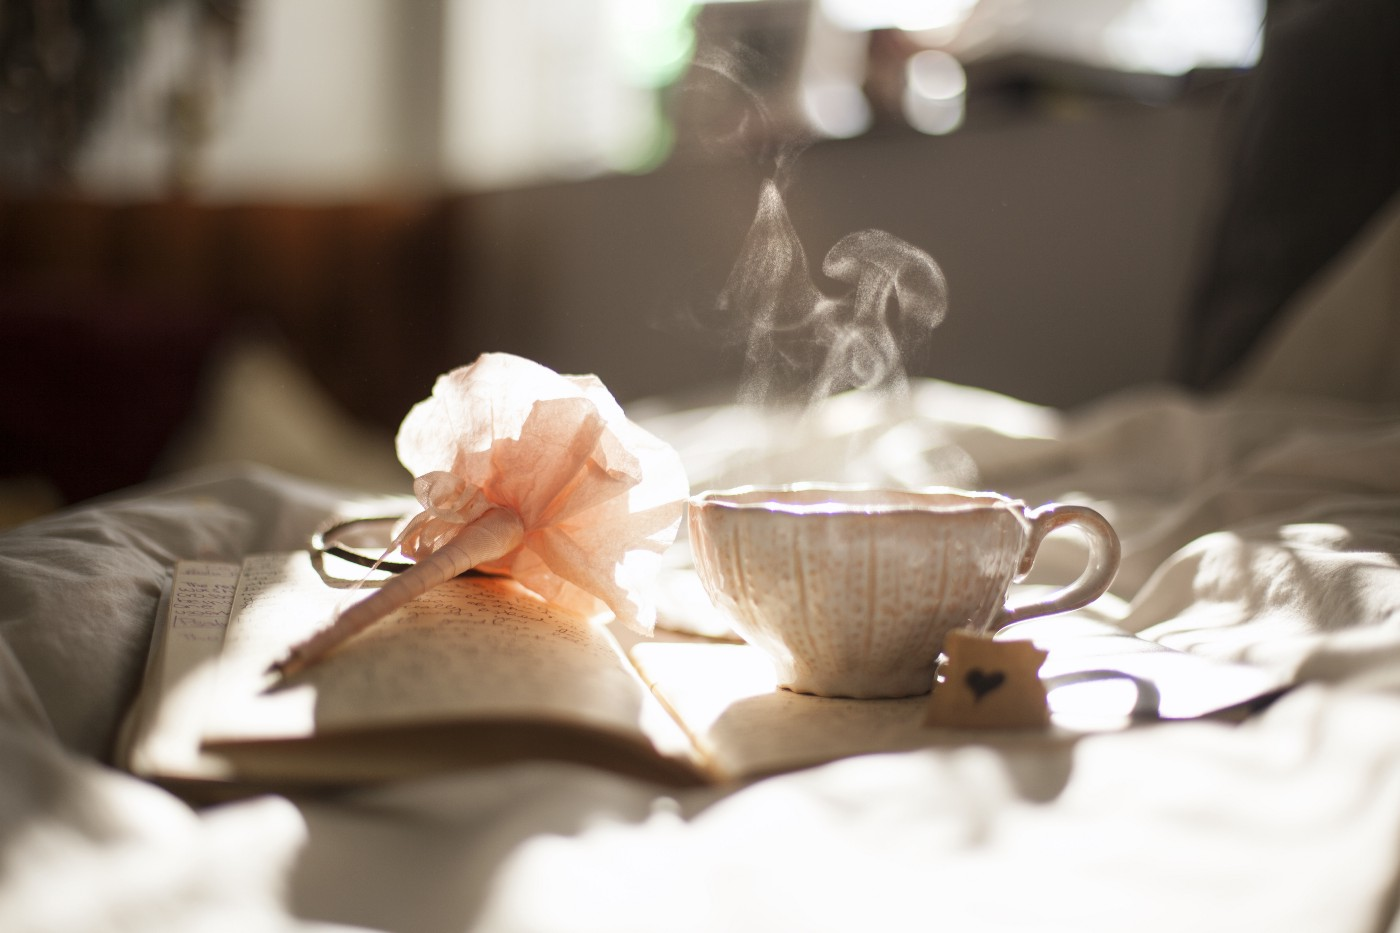 A pen, a book and glass of warm tea place on tablecloth in sunshine